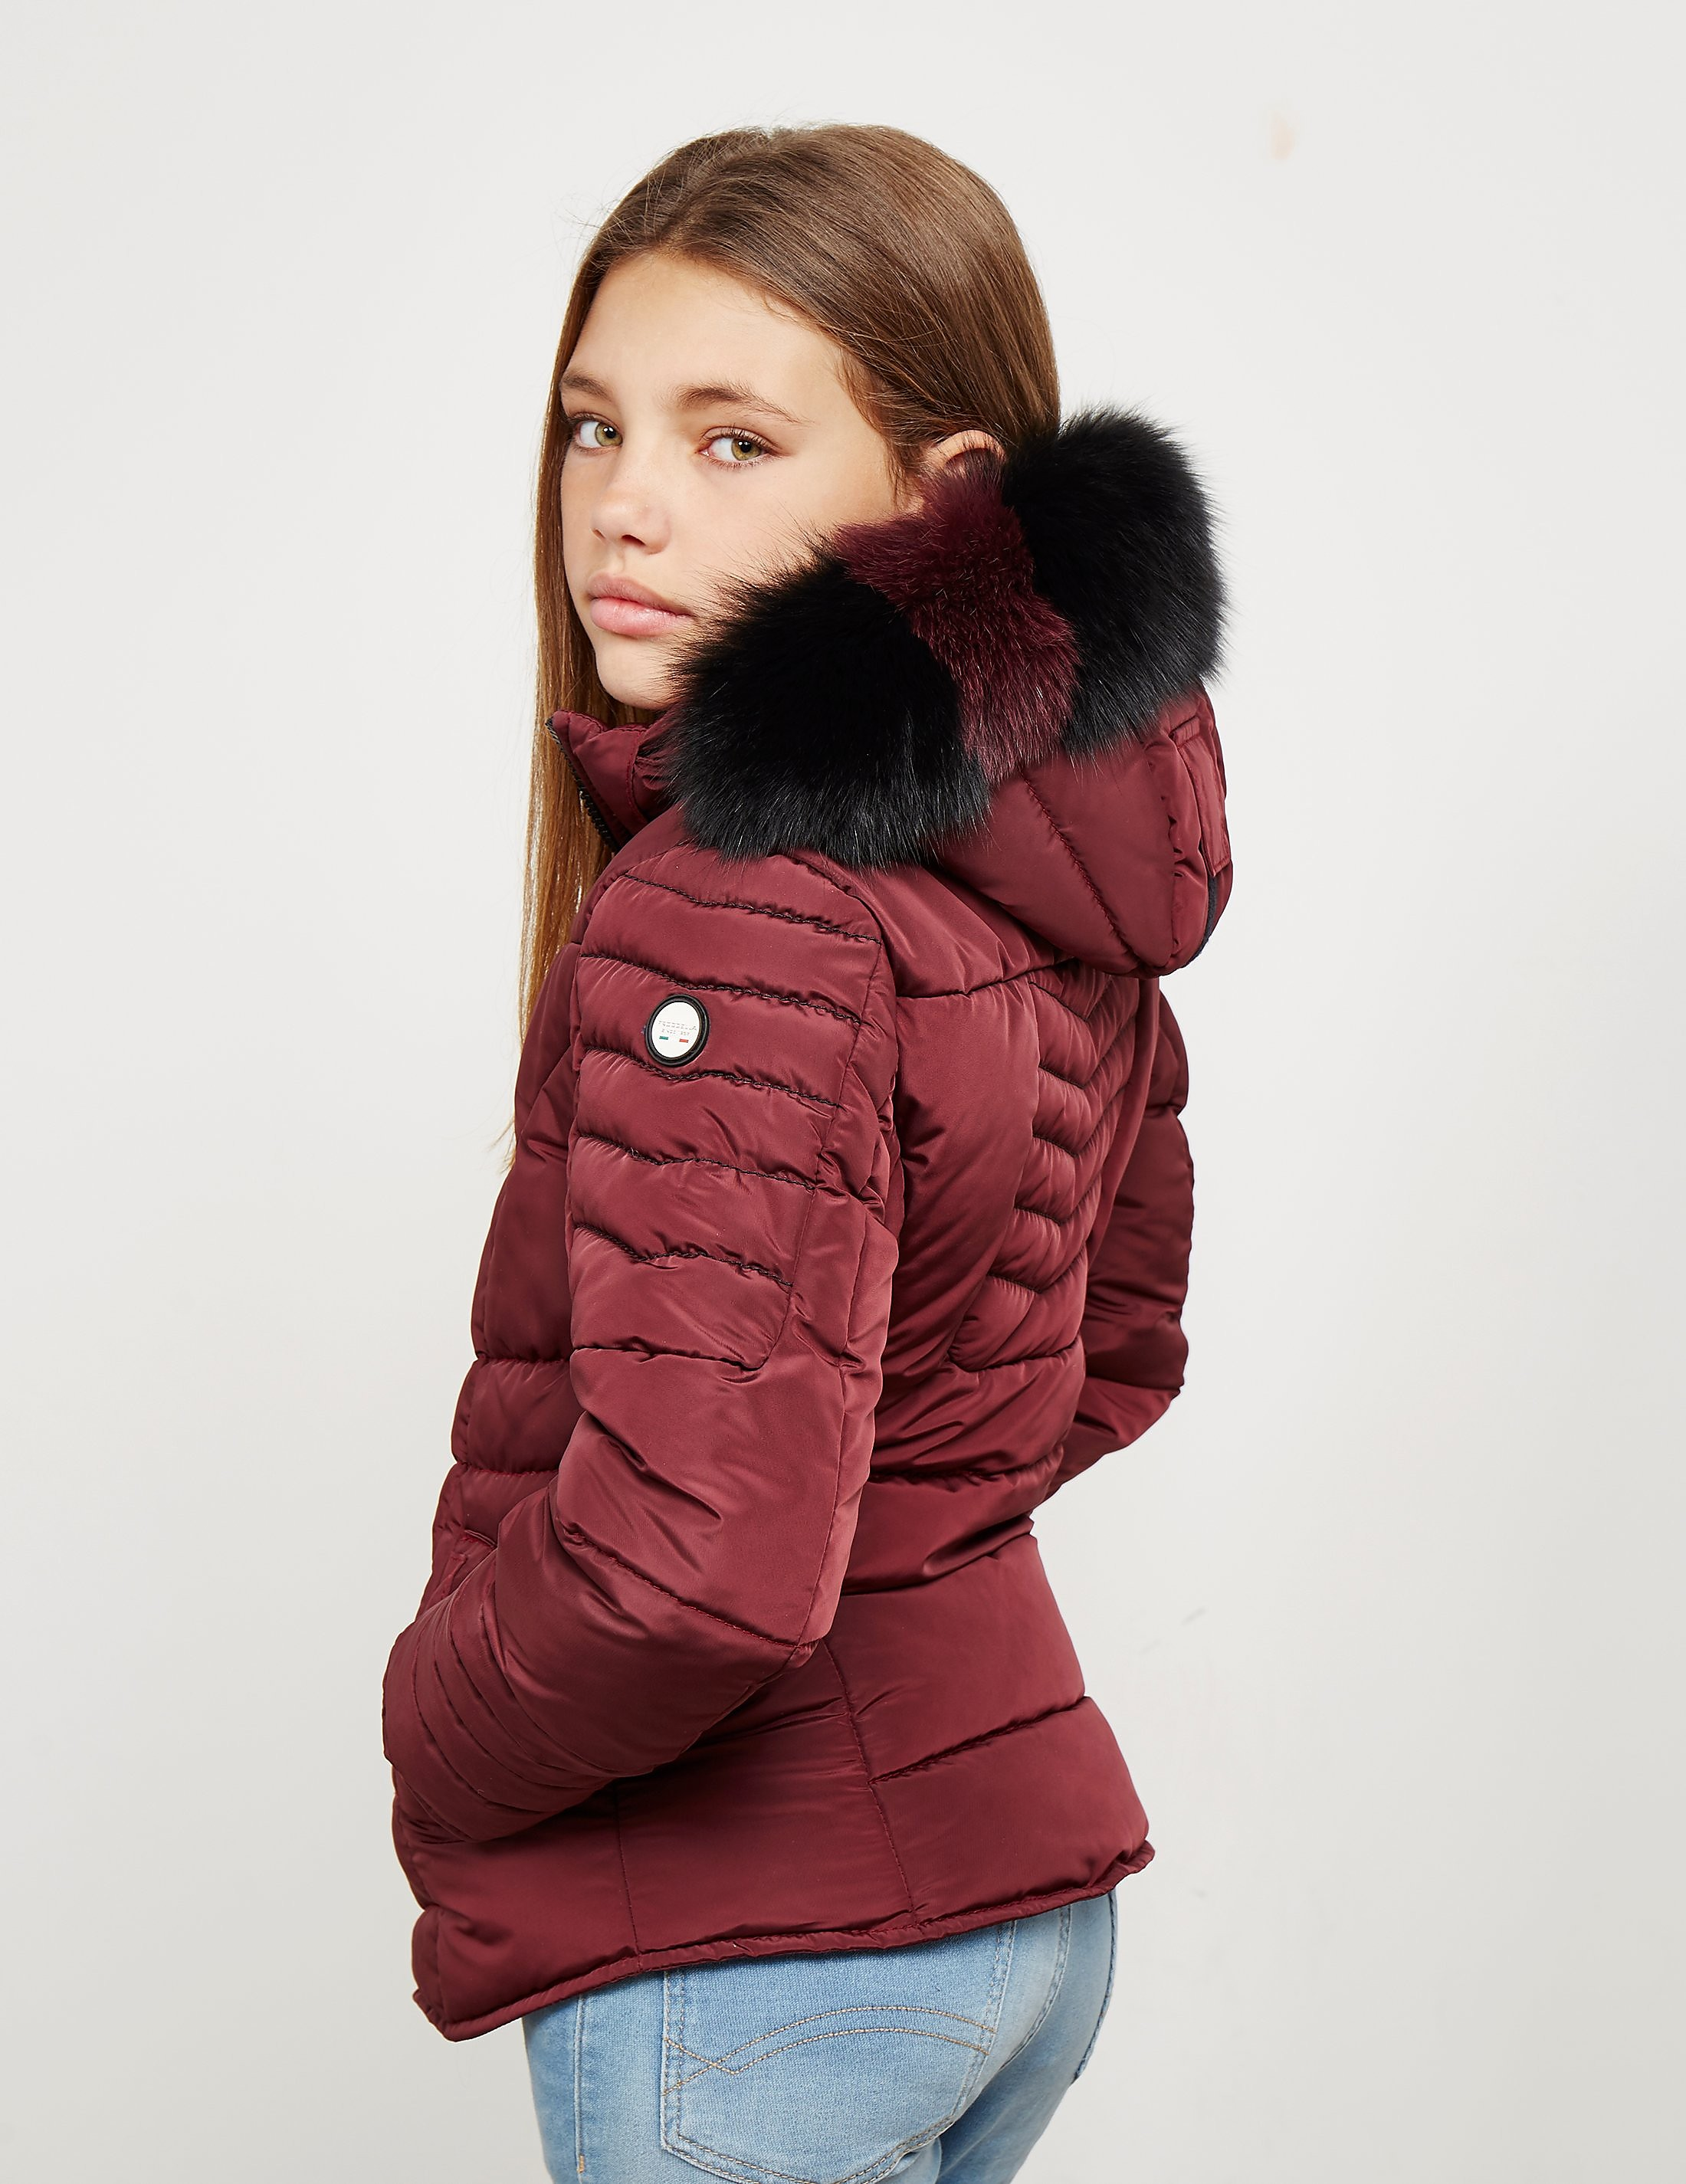 Froccella Chevron Padded Jacket